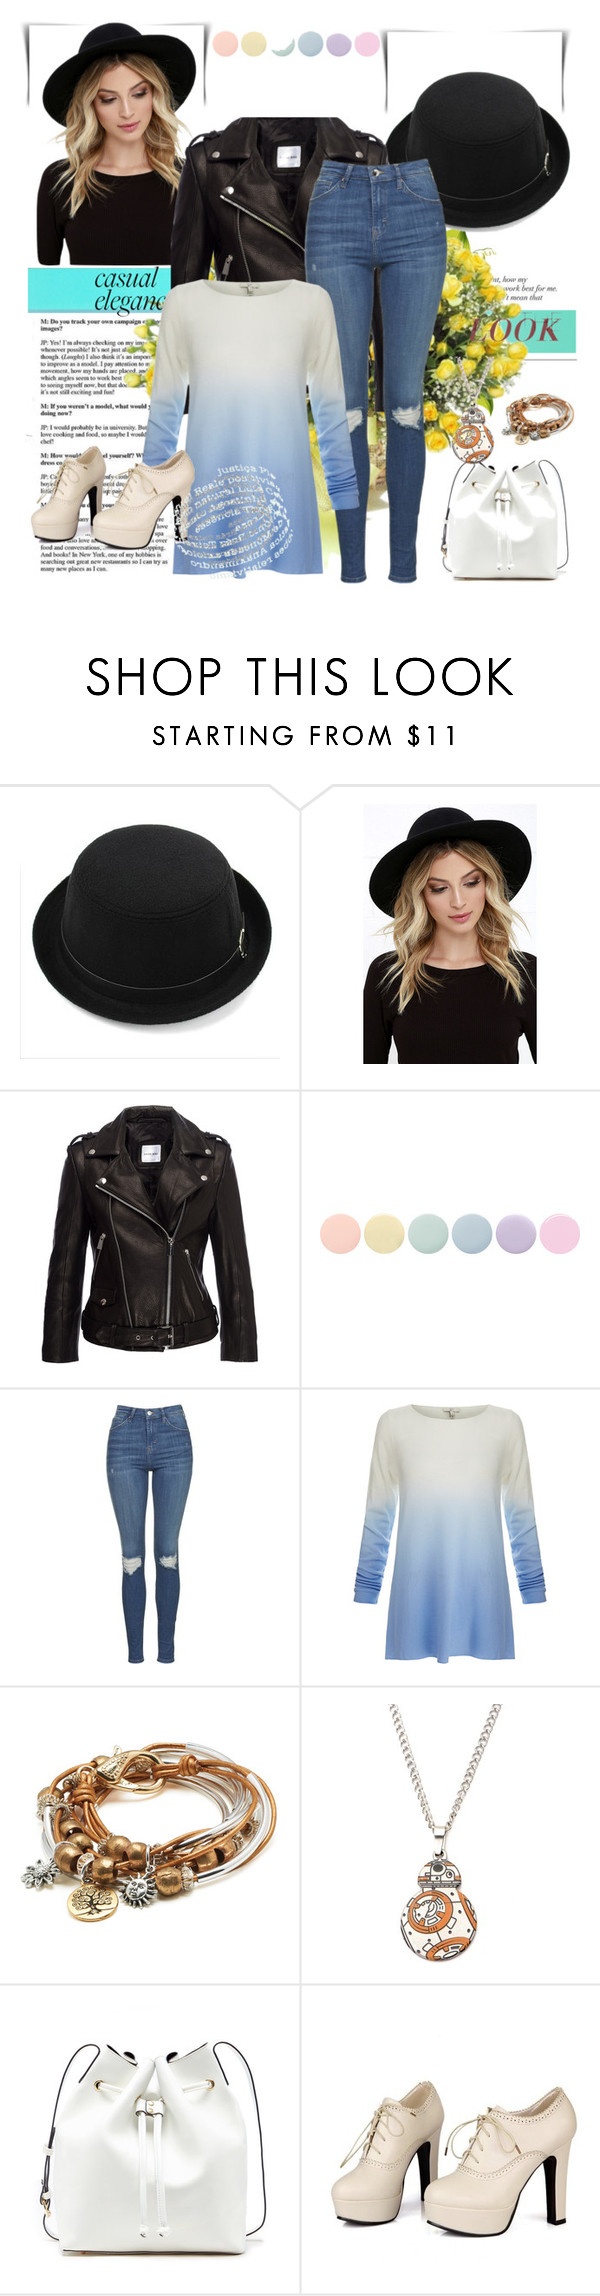 """""""polyvore"""" by amra-2-2 ❤ liked on Polyvore featuring RHYTHM, Deborah Lippmann, Topshop, Joie, Lizzy James, Sole Society, Sidewalk and DENY Designs"""